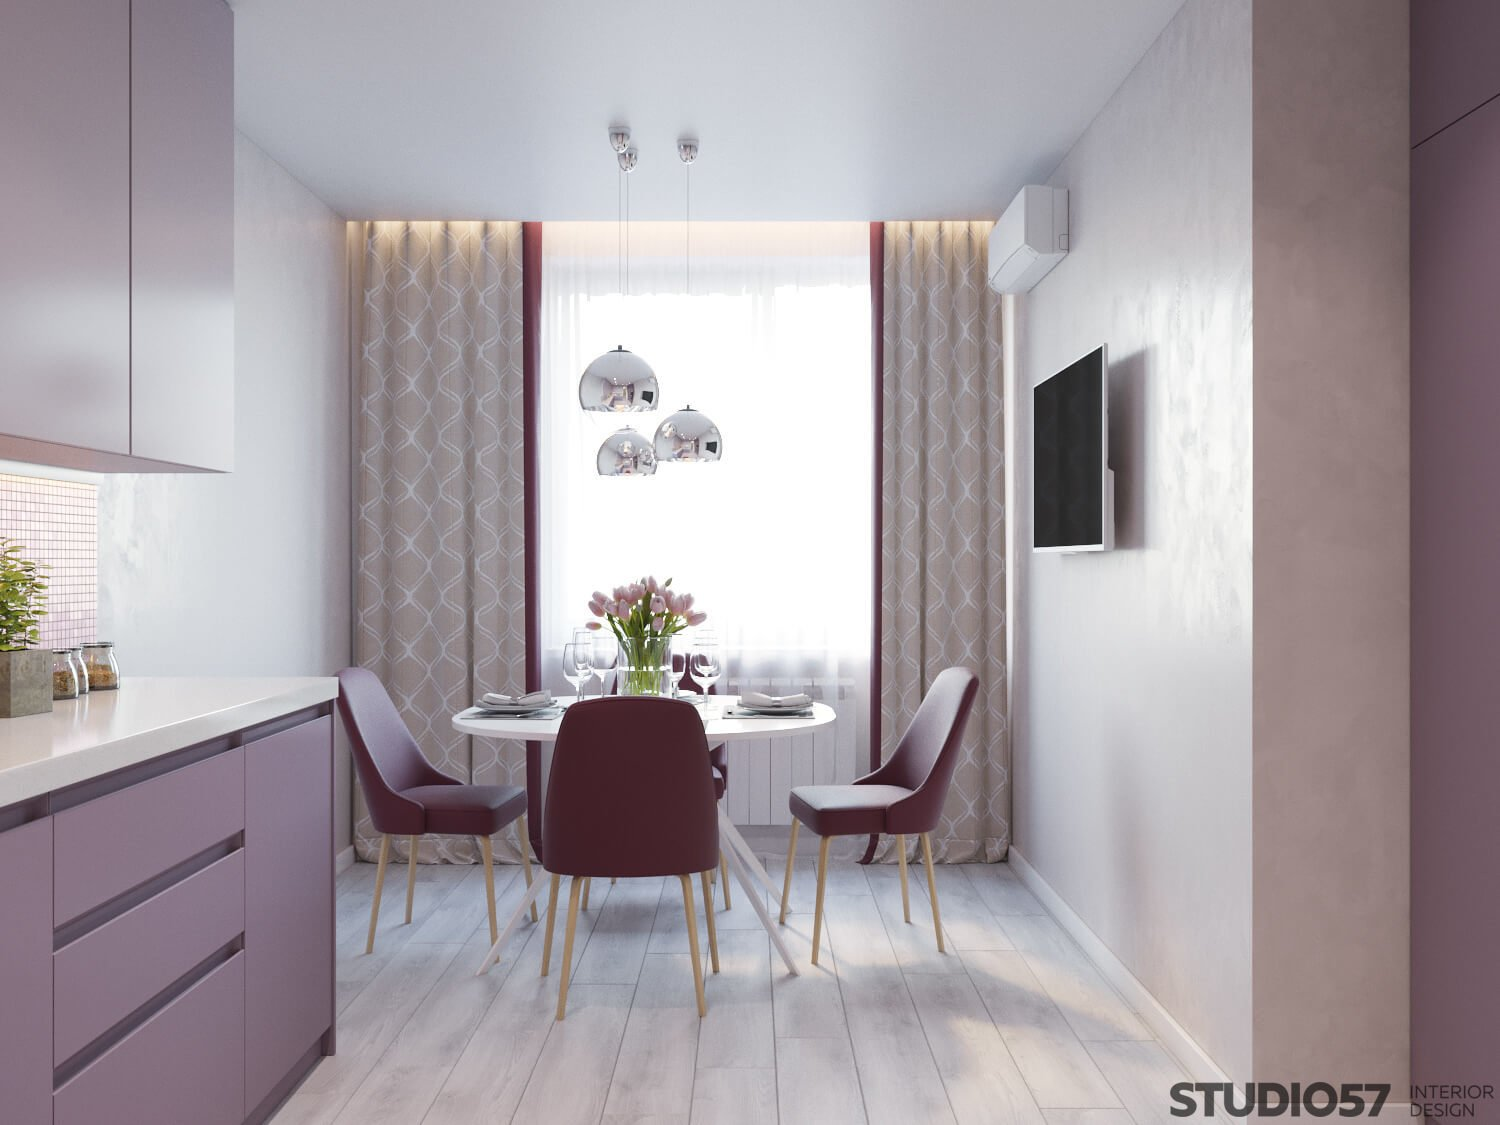 Dining area in pink